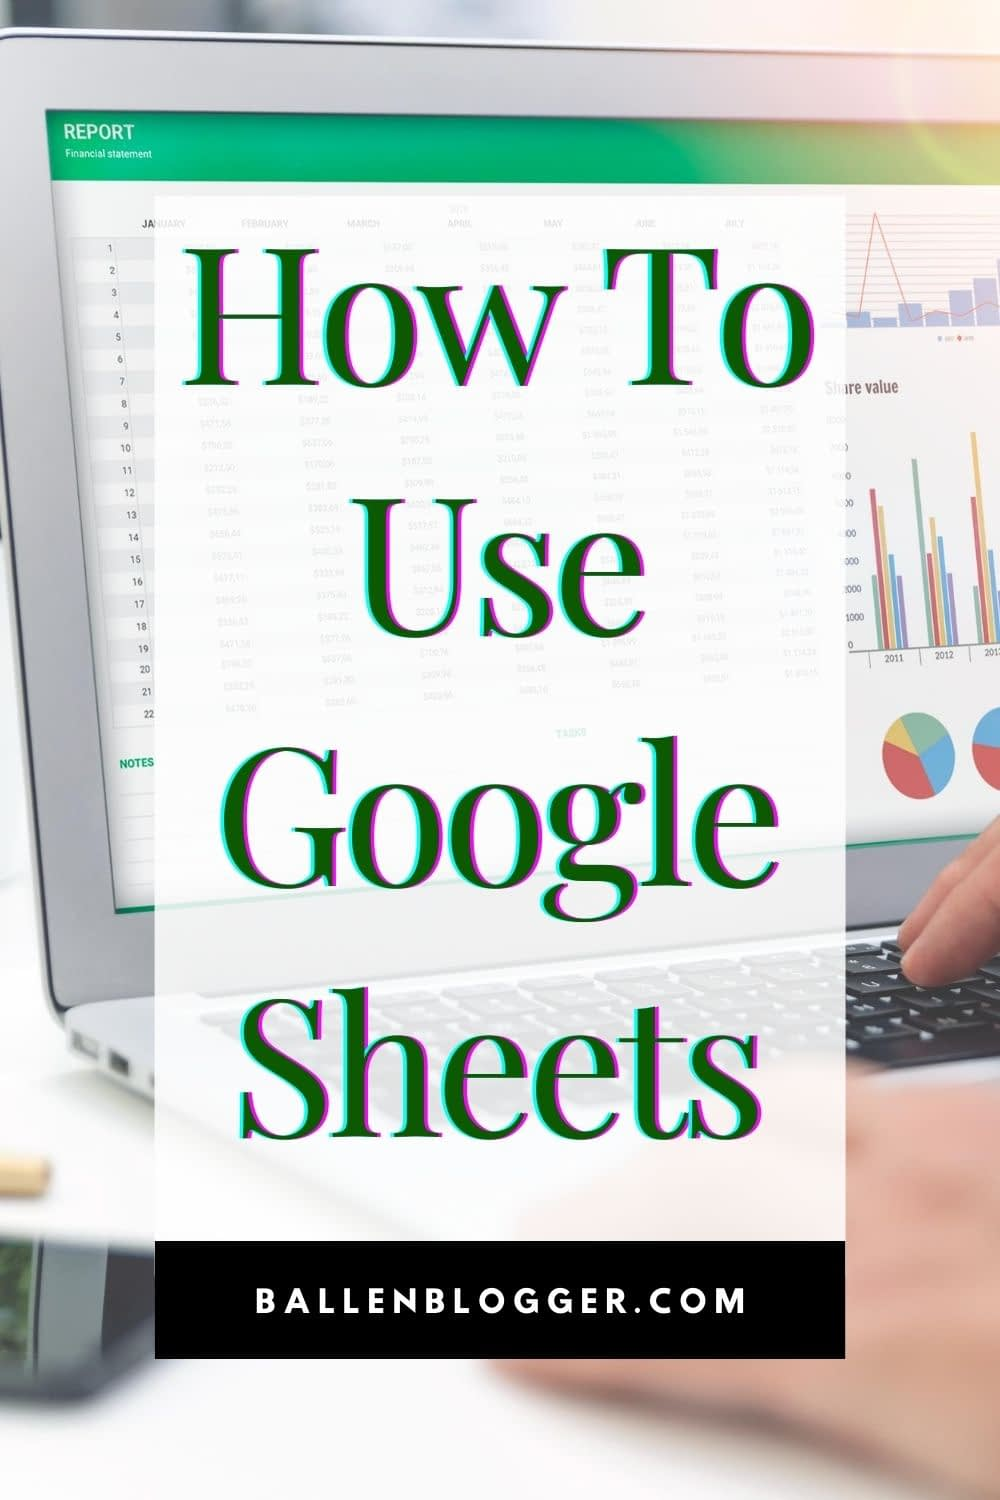 I love Google sheets. It's so much more than just a spreadsheet maker. Once you learn how to use Google Sheets, which is a free tool, you'll find yourself more organized than ever!